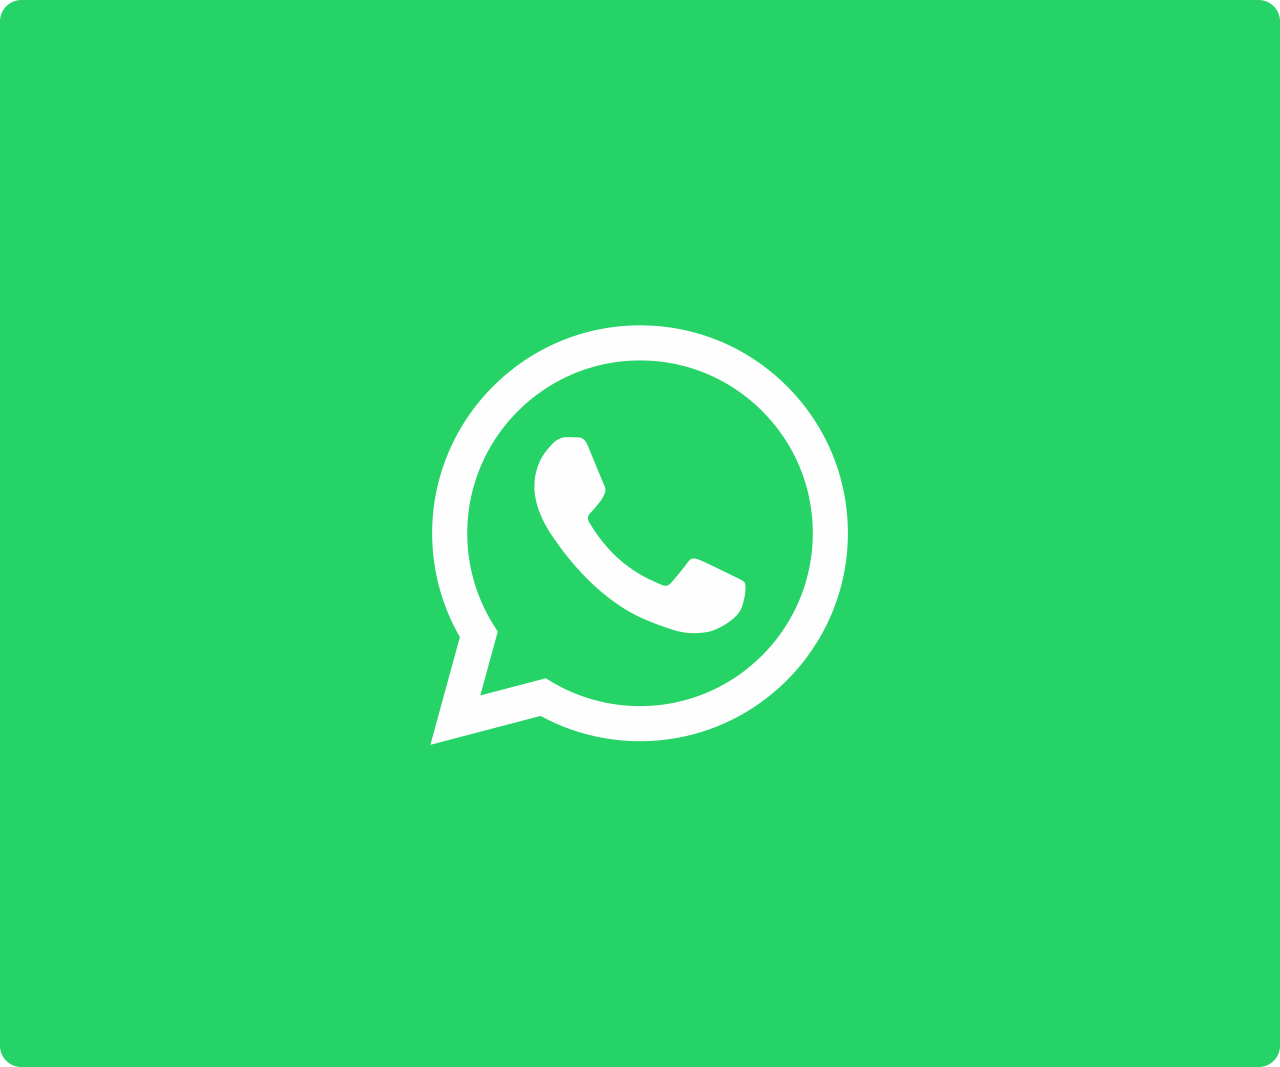 Who will be the next CEO of WhatsApp?